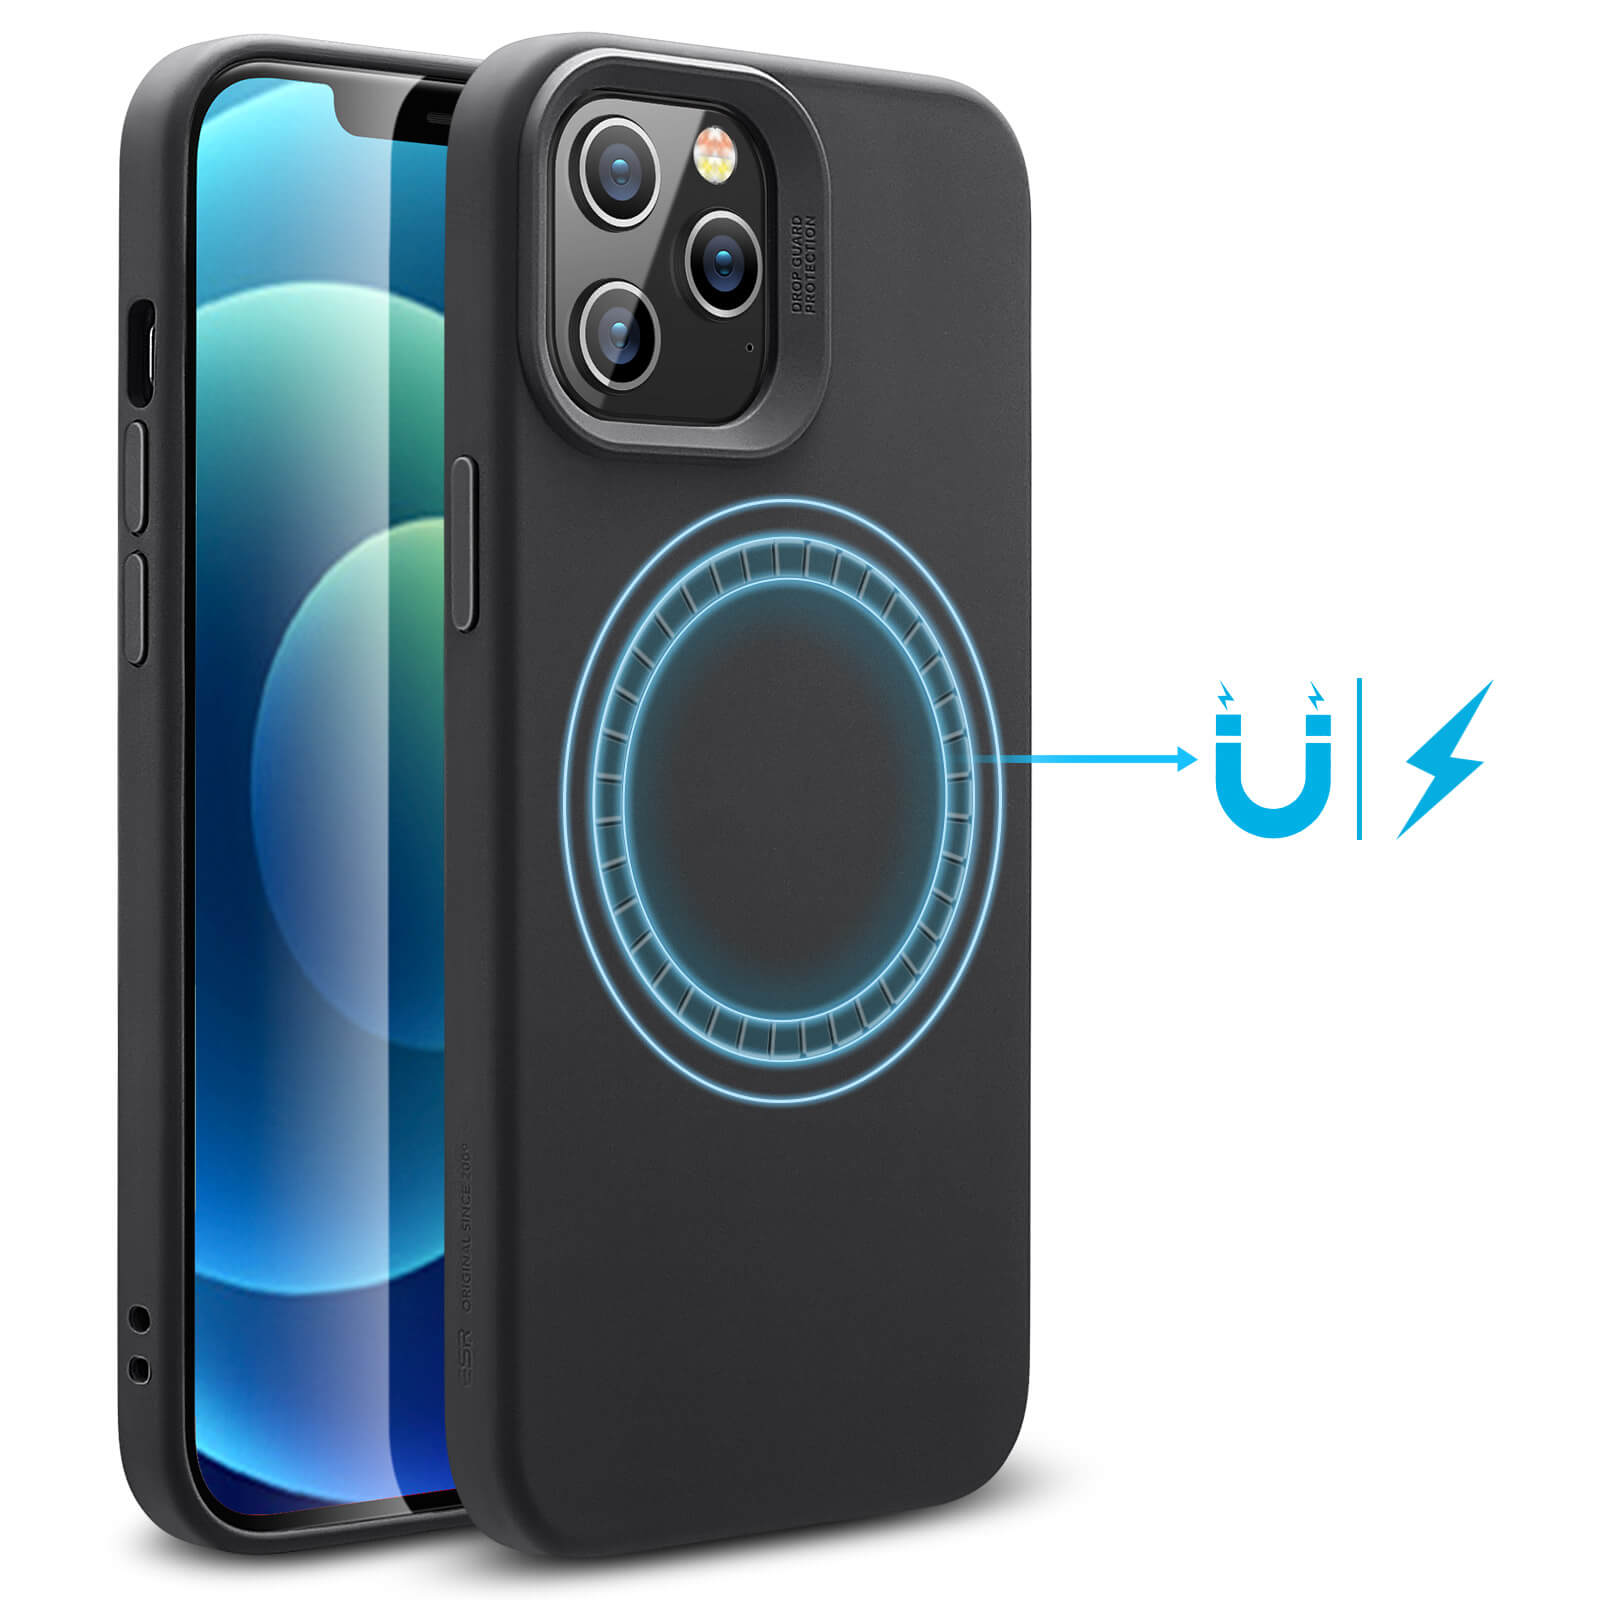 iPhone-12-Pro-Max-Cloud-Soft-Case-with-HaloLock-Magnetic-5-1